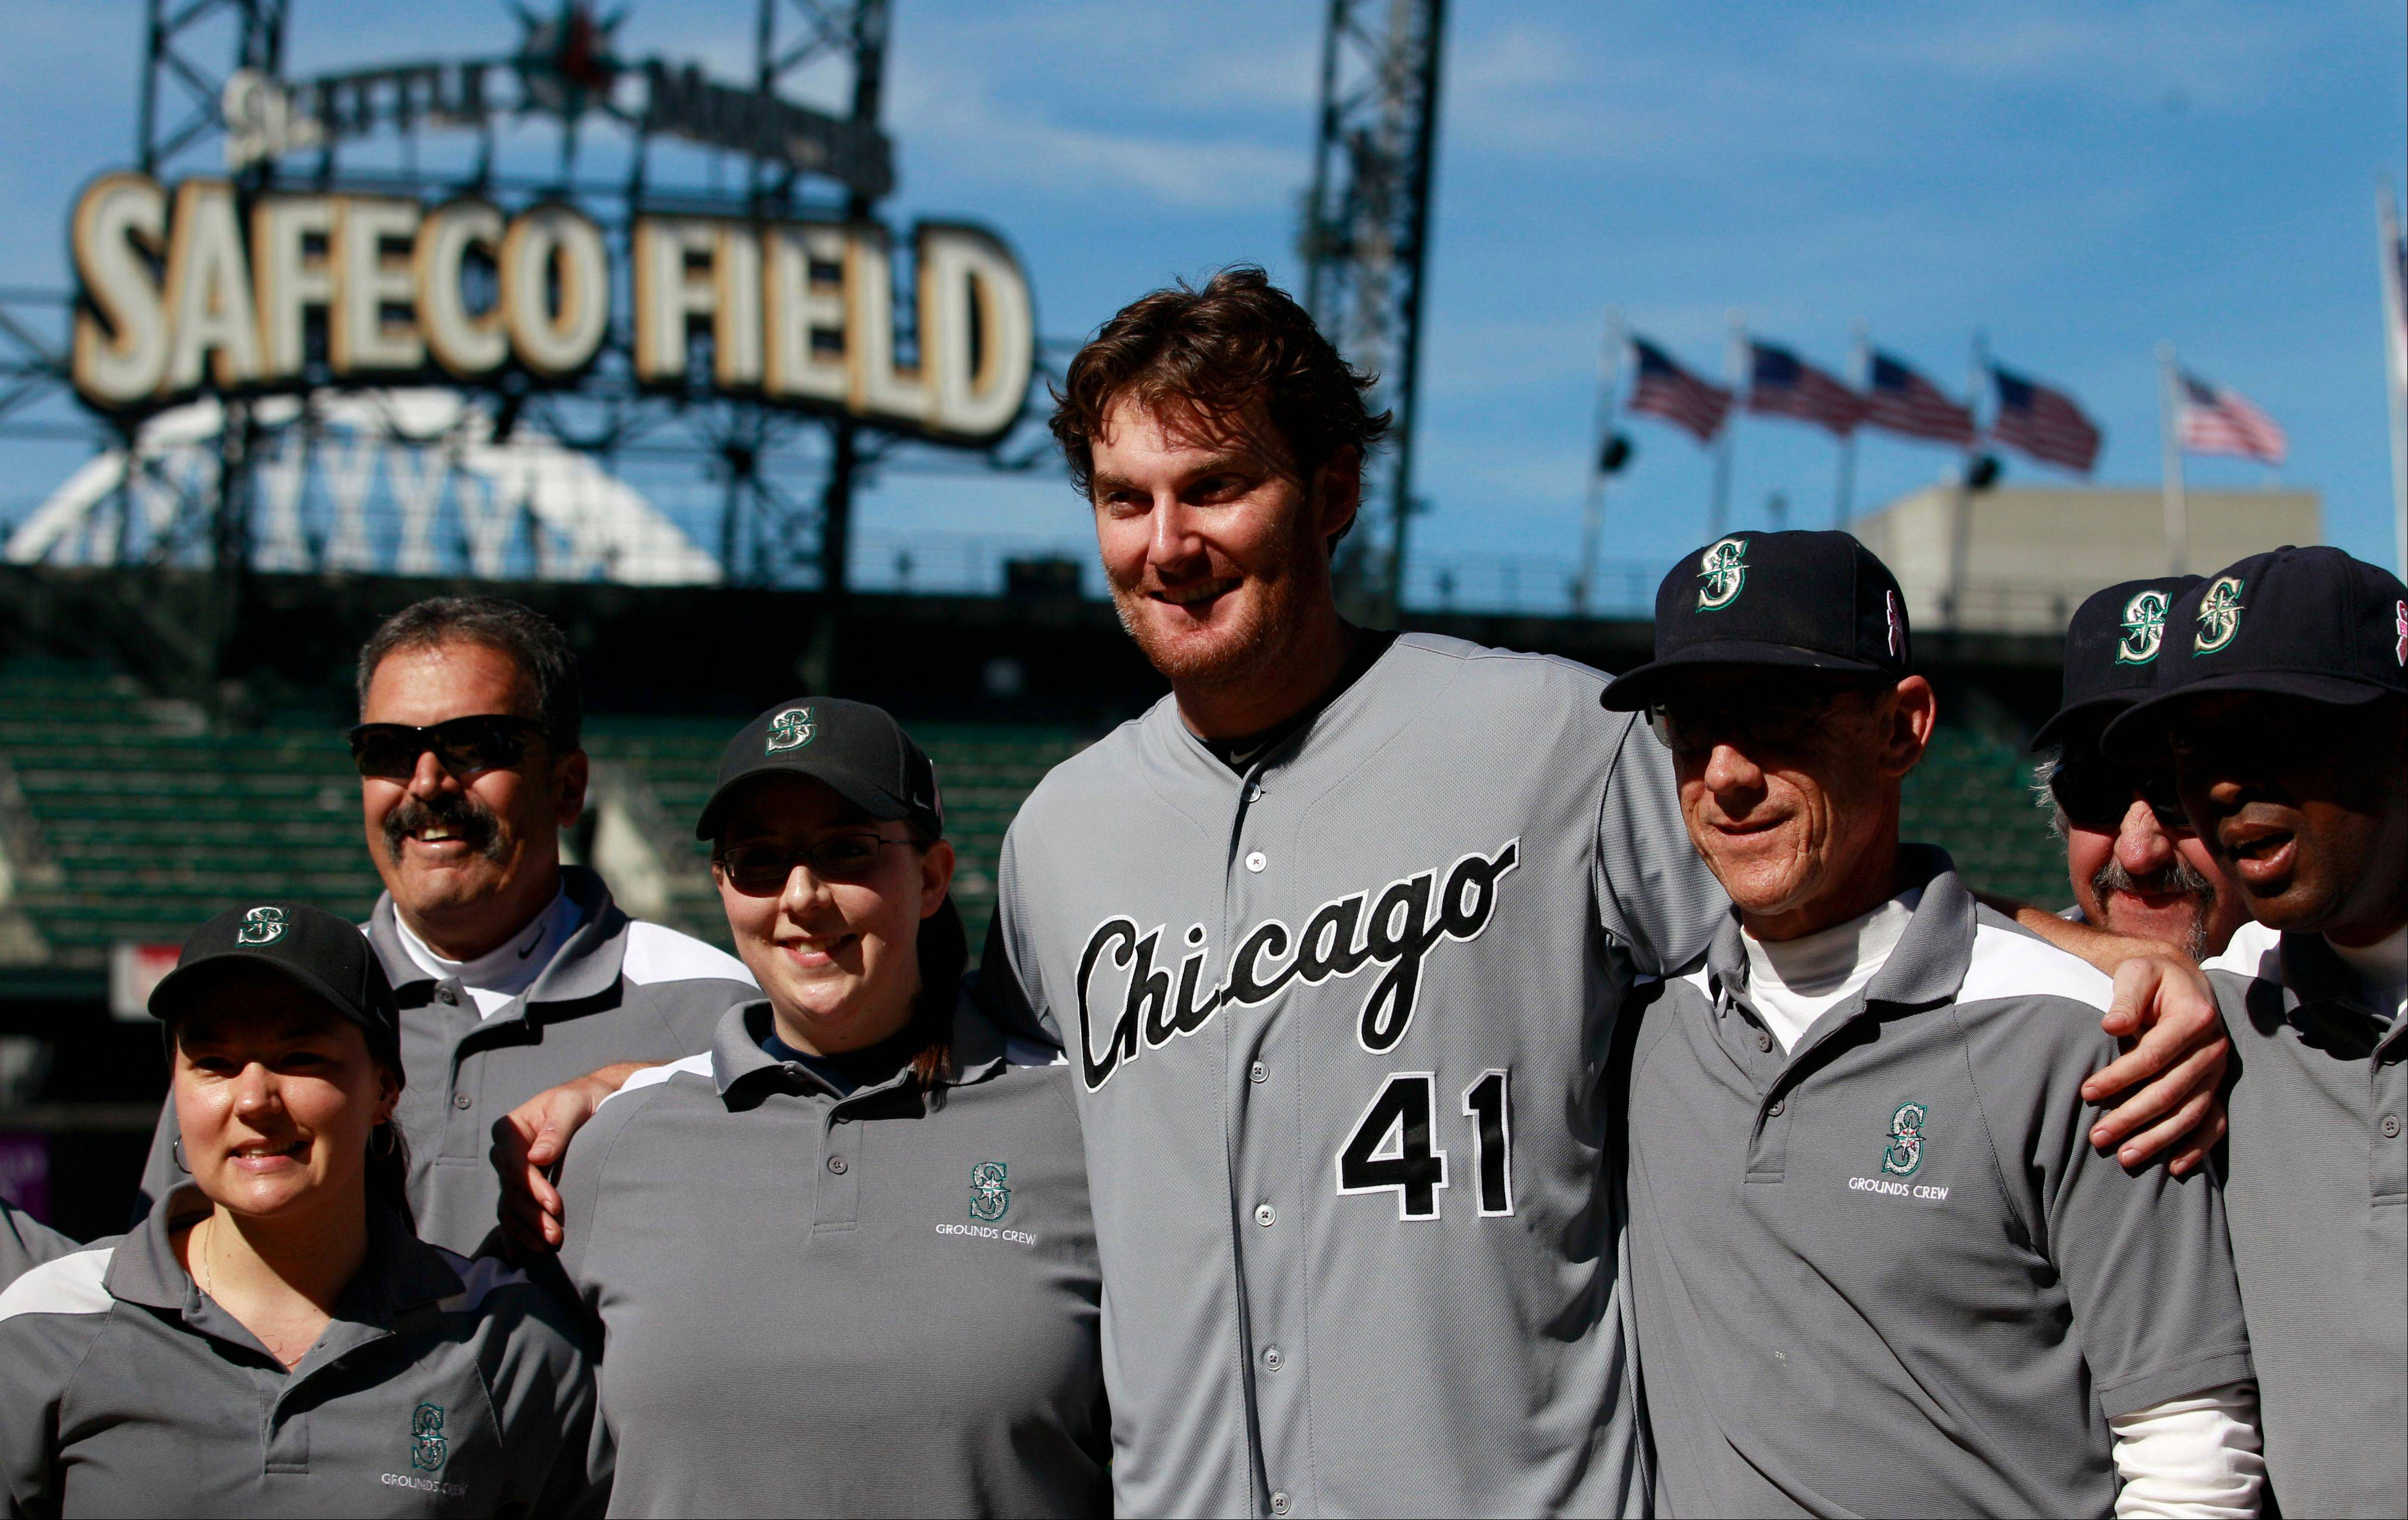 White Sox starting pitcher Phil Humber, center, poses with members of the grounds crew on the pitcher's mound Saturday after pitching a perfect game against the Seattle Mariners in Seattle. The White Sox won 4-0.